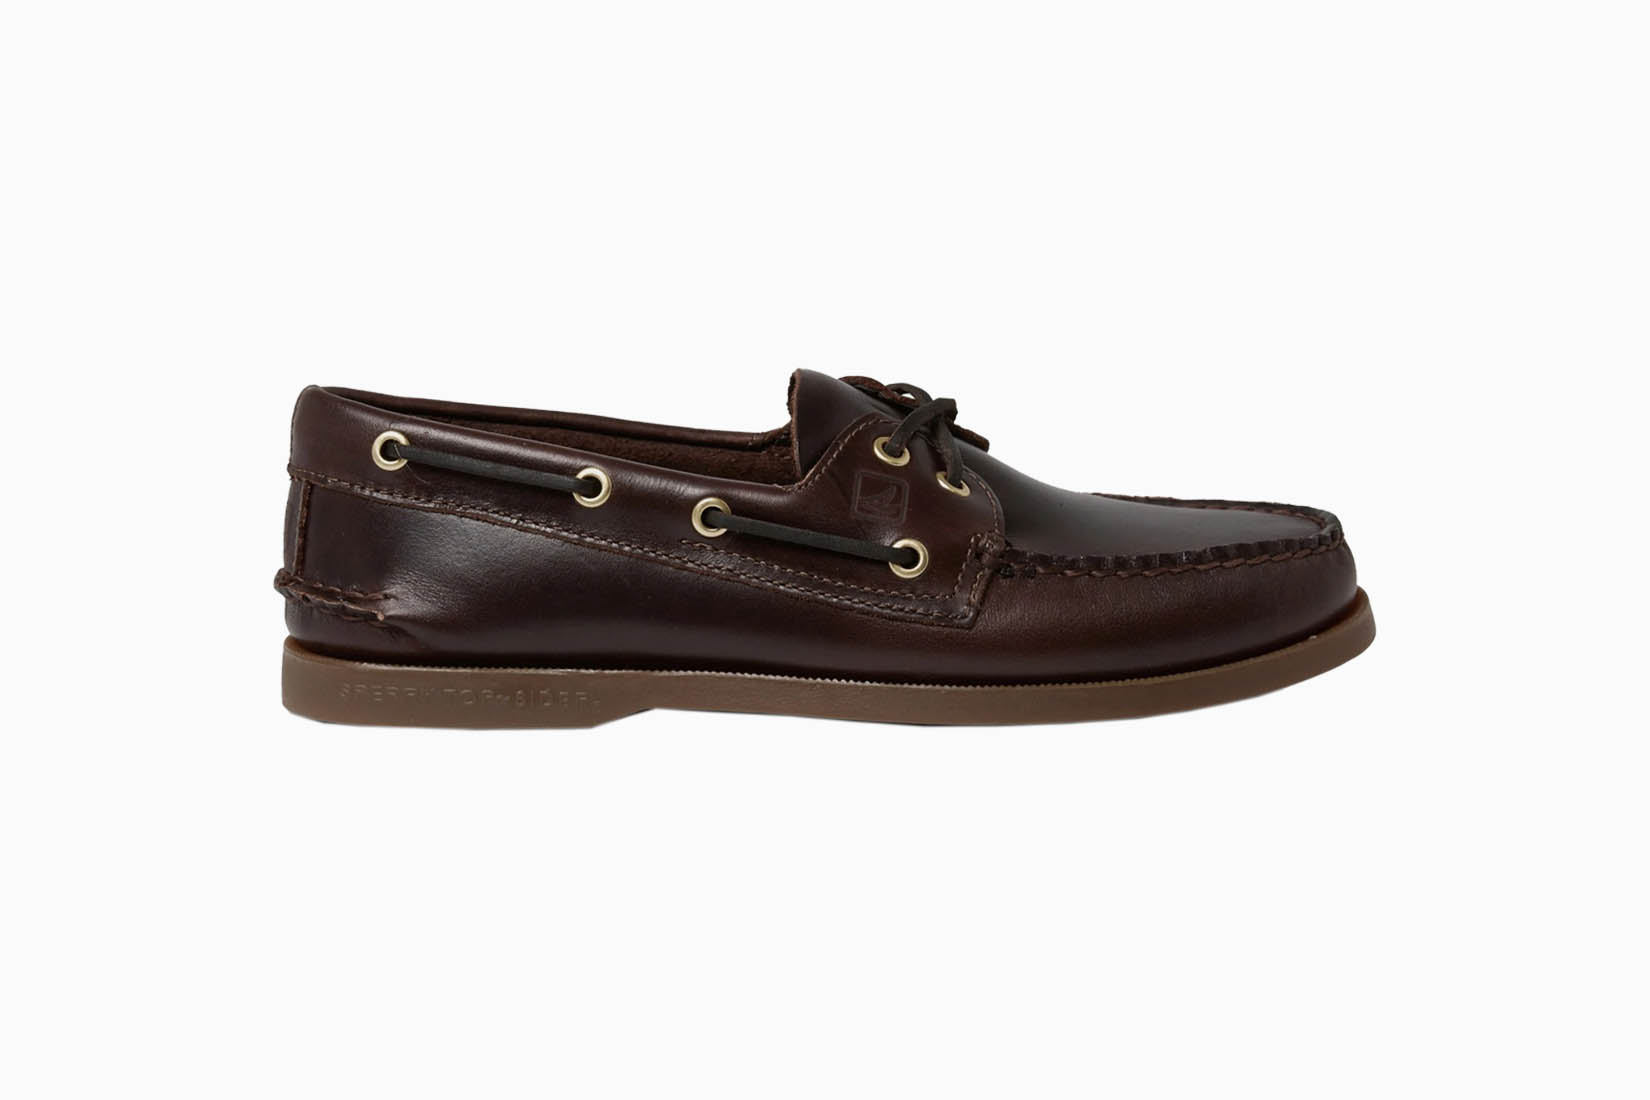 best casual shoes men sperry burnished leather boat shoes review Luxe Digital